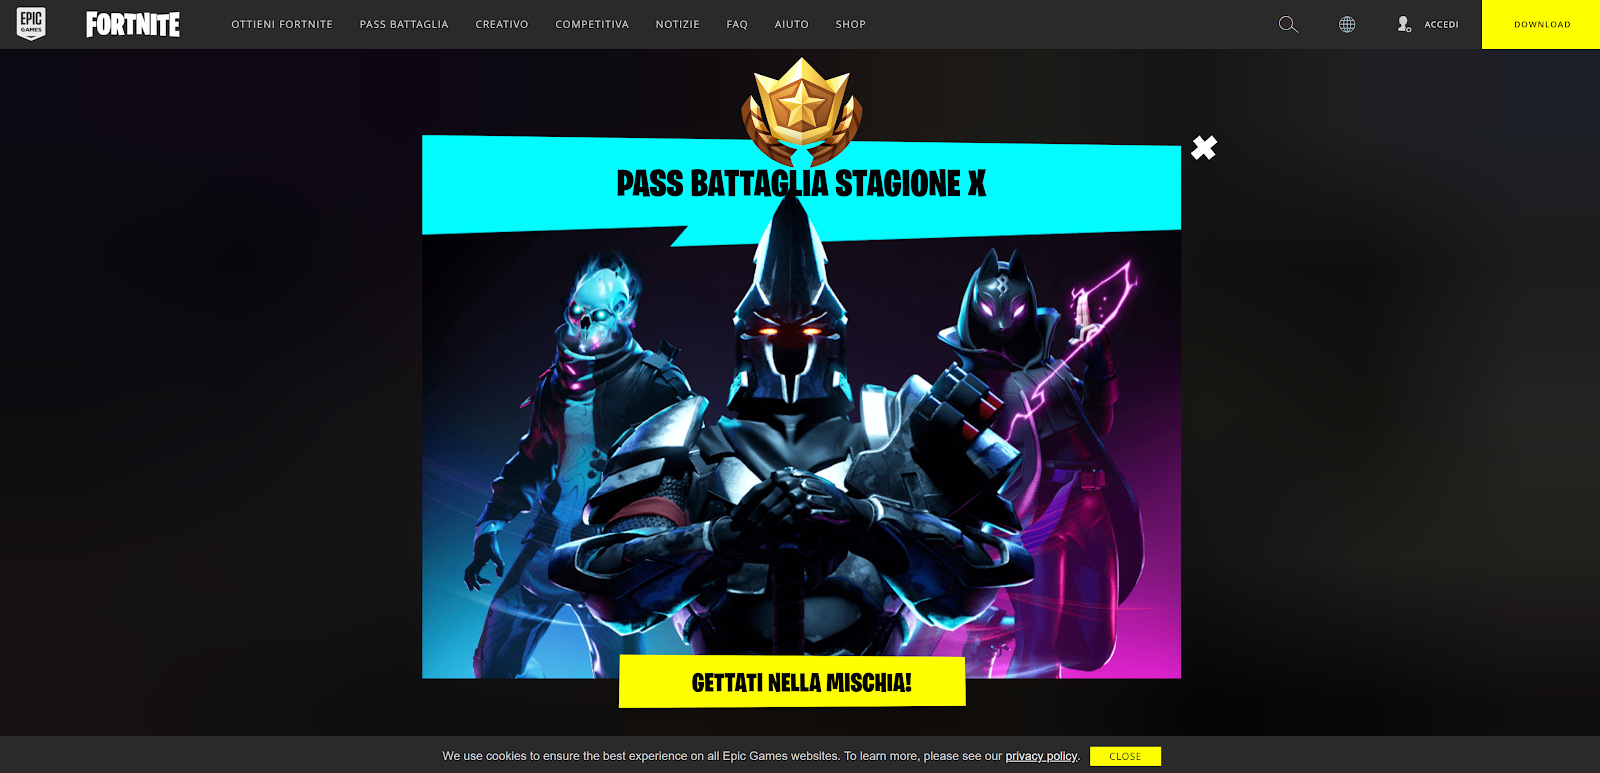 Come Installare Fortnite Su PC - Download Immagine #1